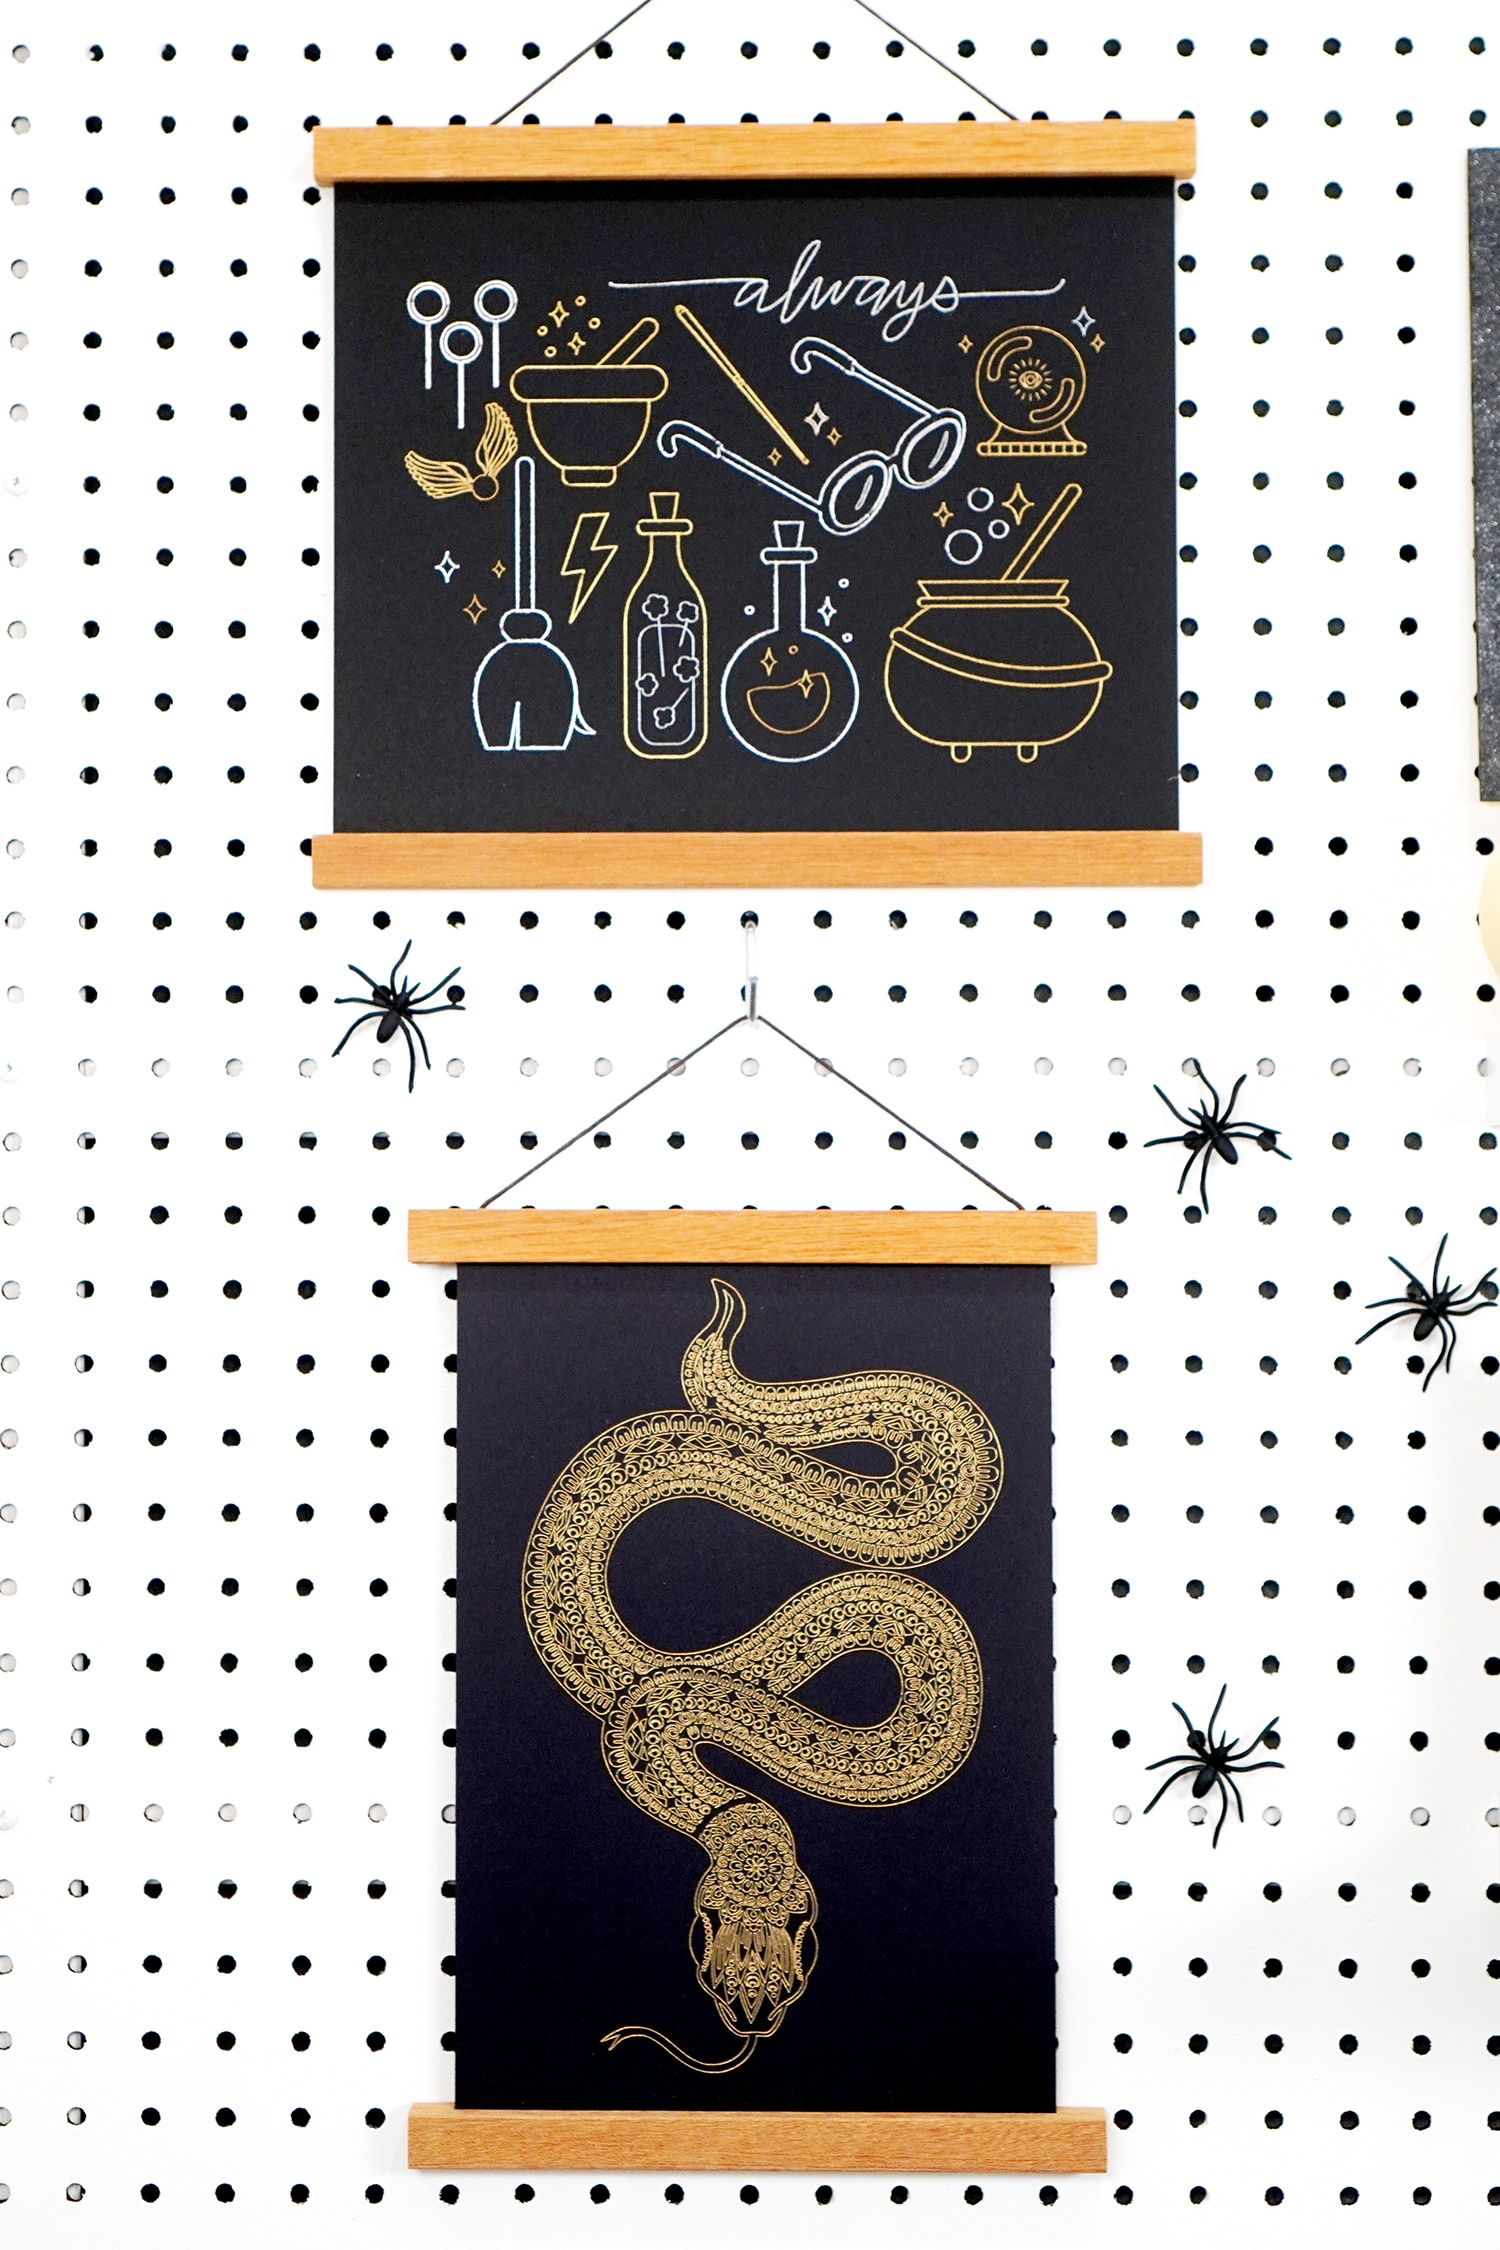 Halloween foil art prints (snake and wizard) hanging on pegboard with spiders